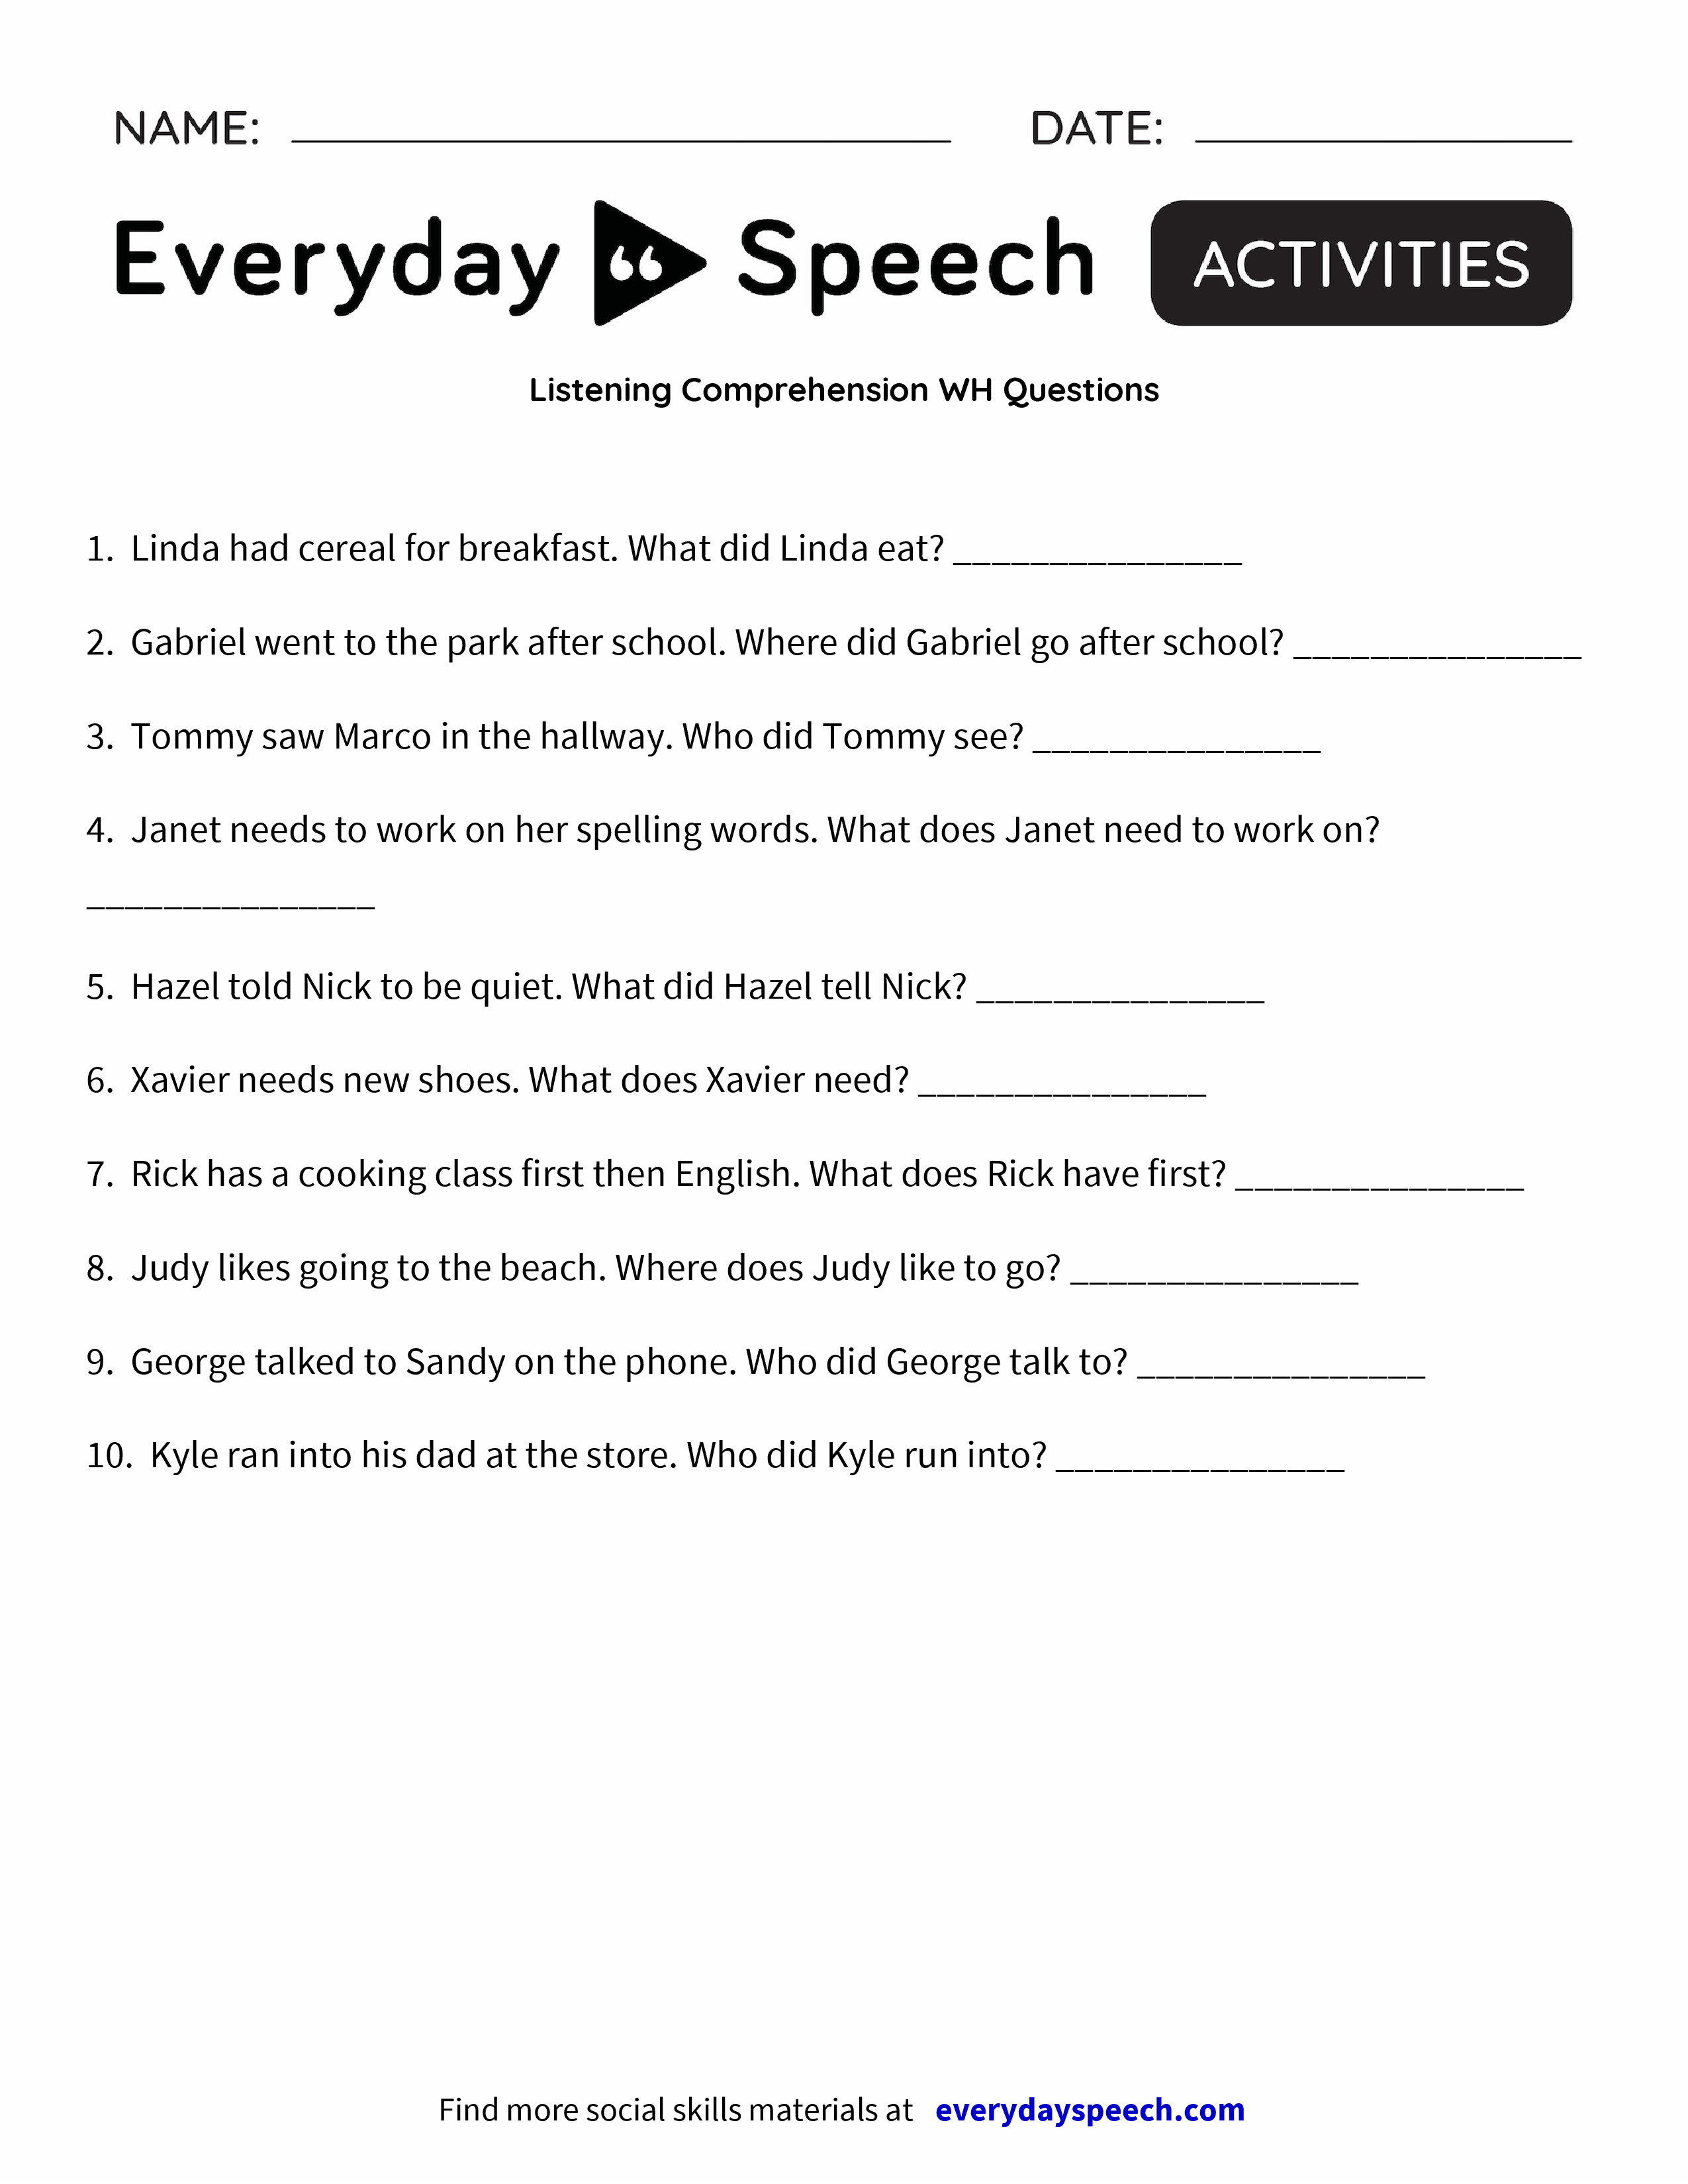 Listening Comprehension Worksheets For Grade 2 gallery - iuniana ...